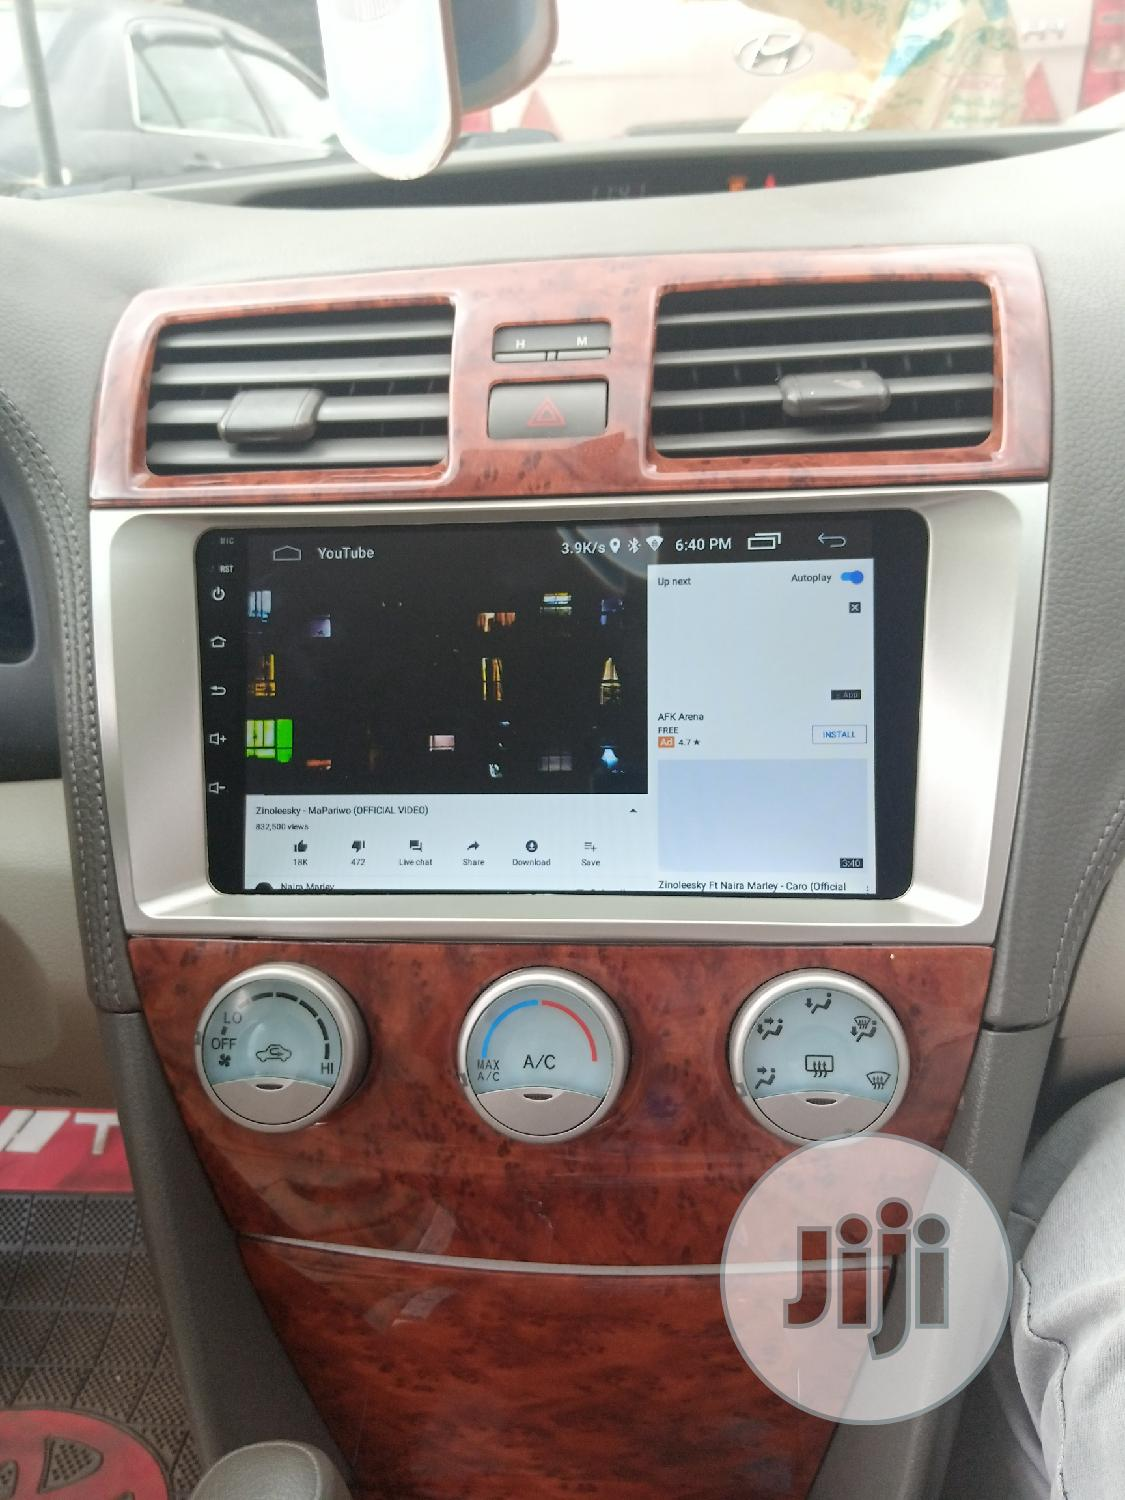 Toyota Camry Android Dvd Player | Vehicle Parts & Accessories for sale in Ikeja, Lagos State, Nigeria